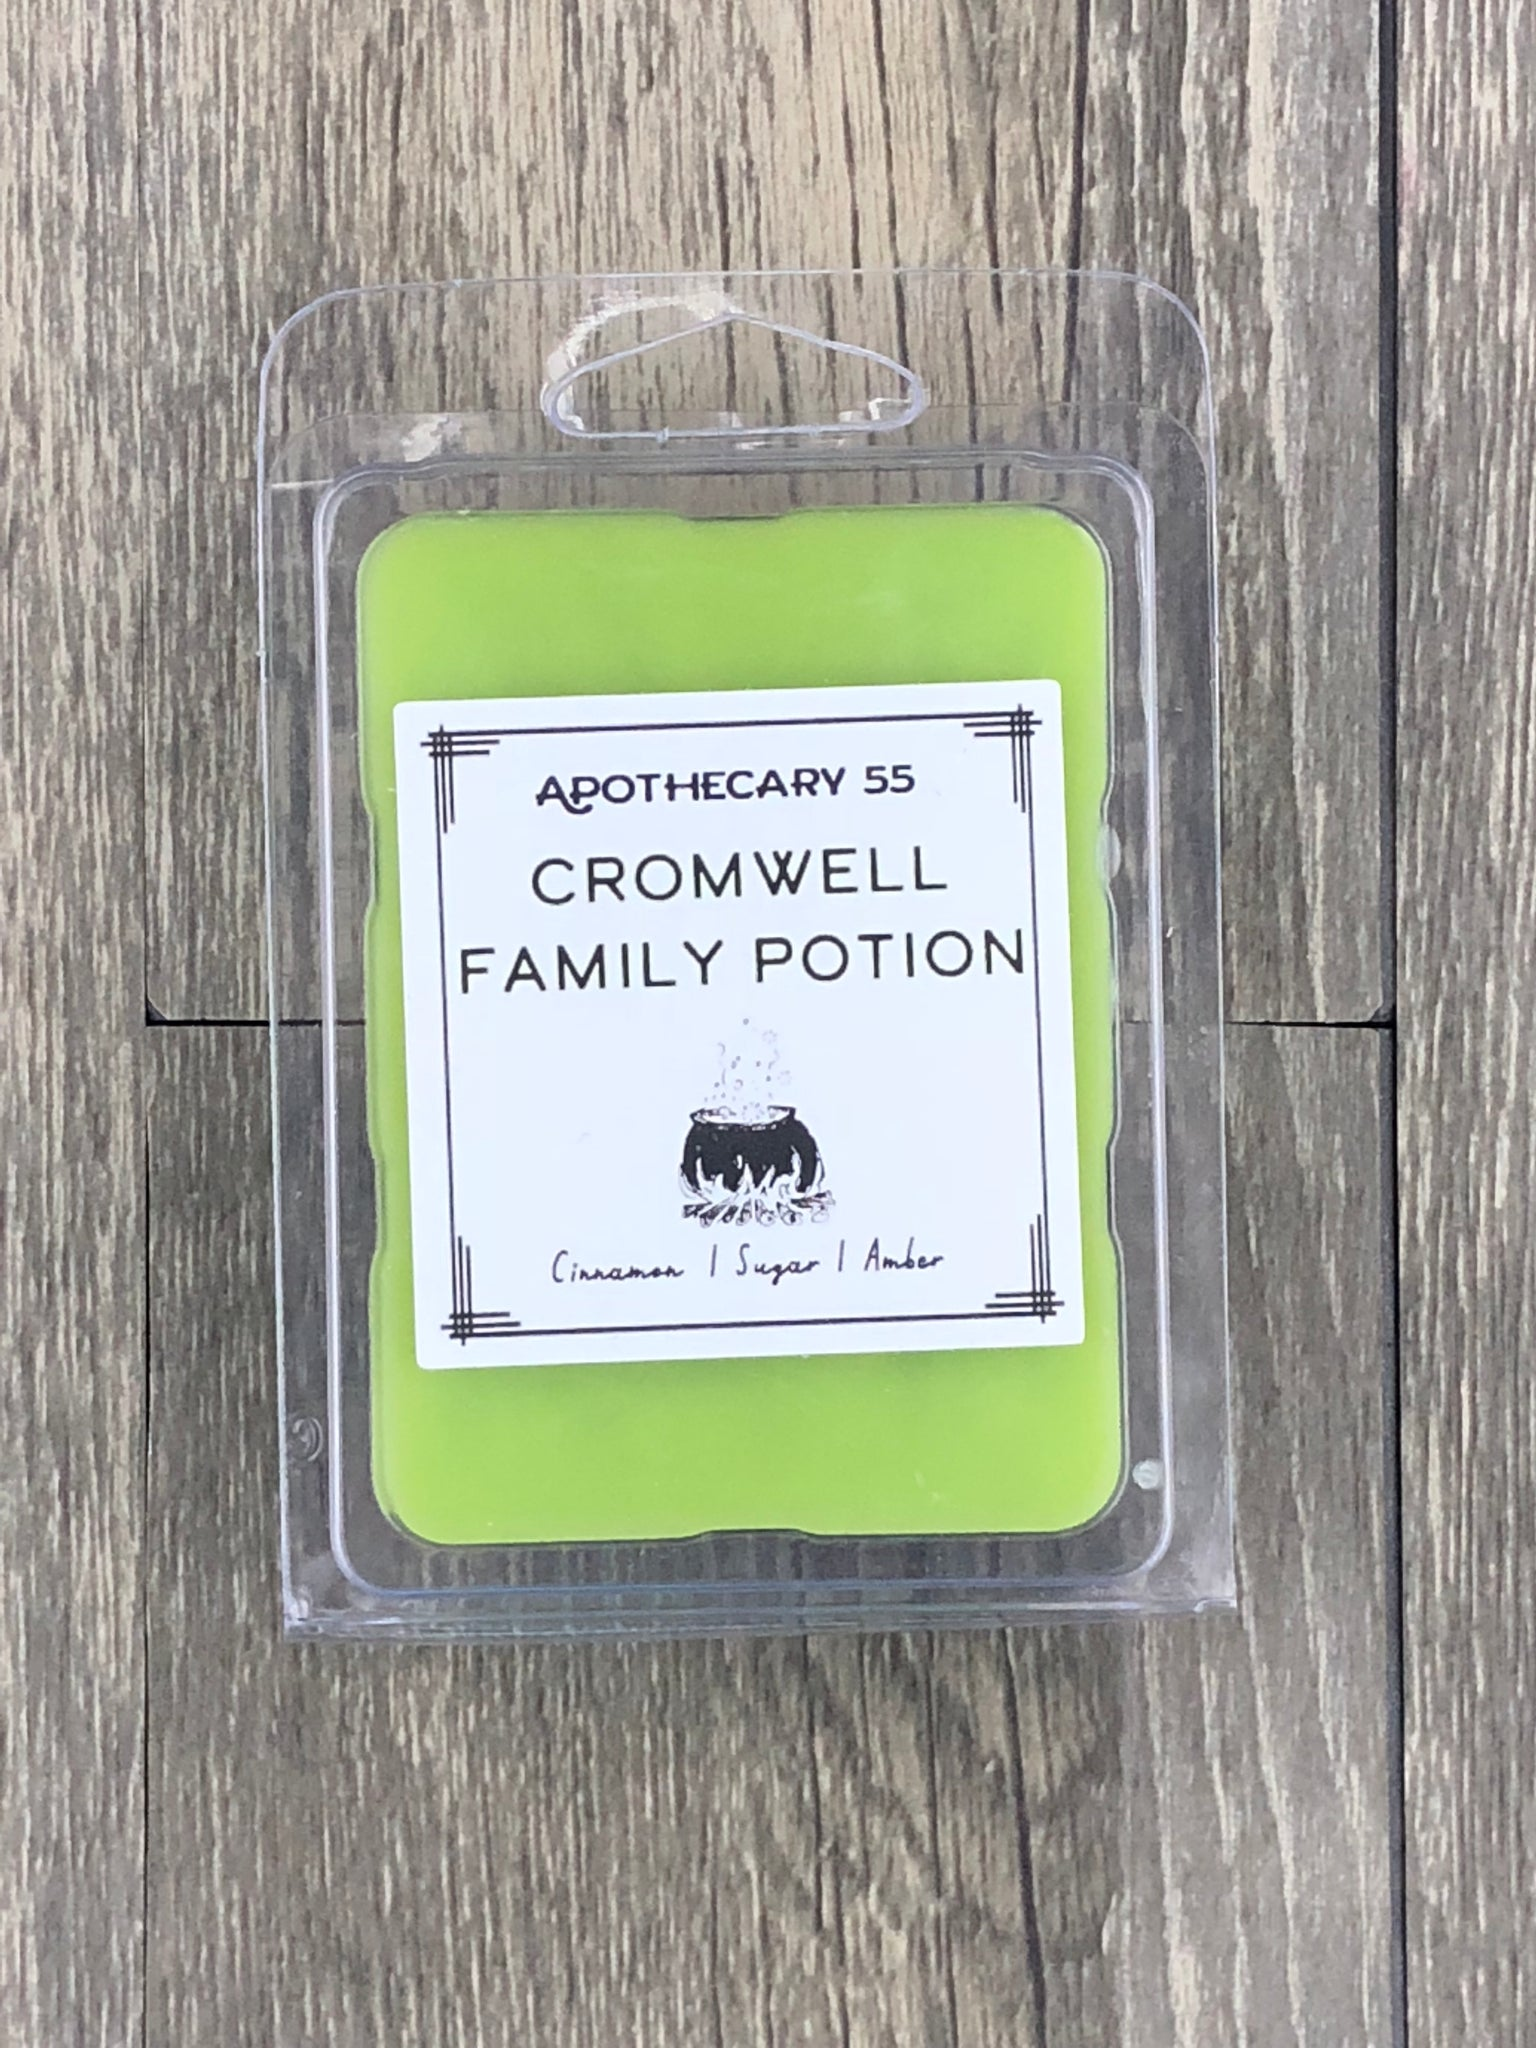 Cromwell Family Potion wax melt